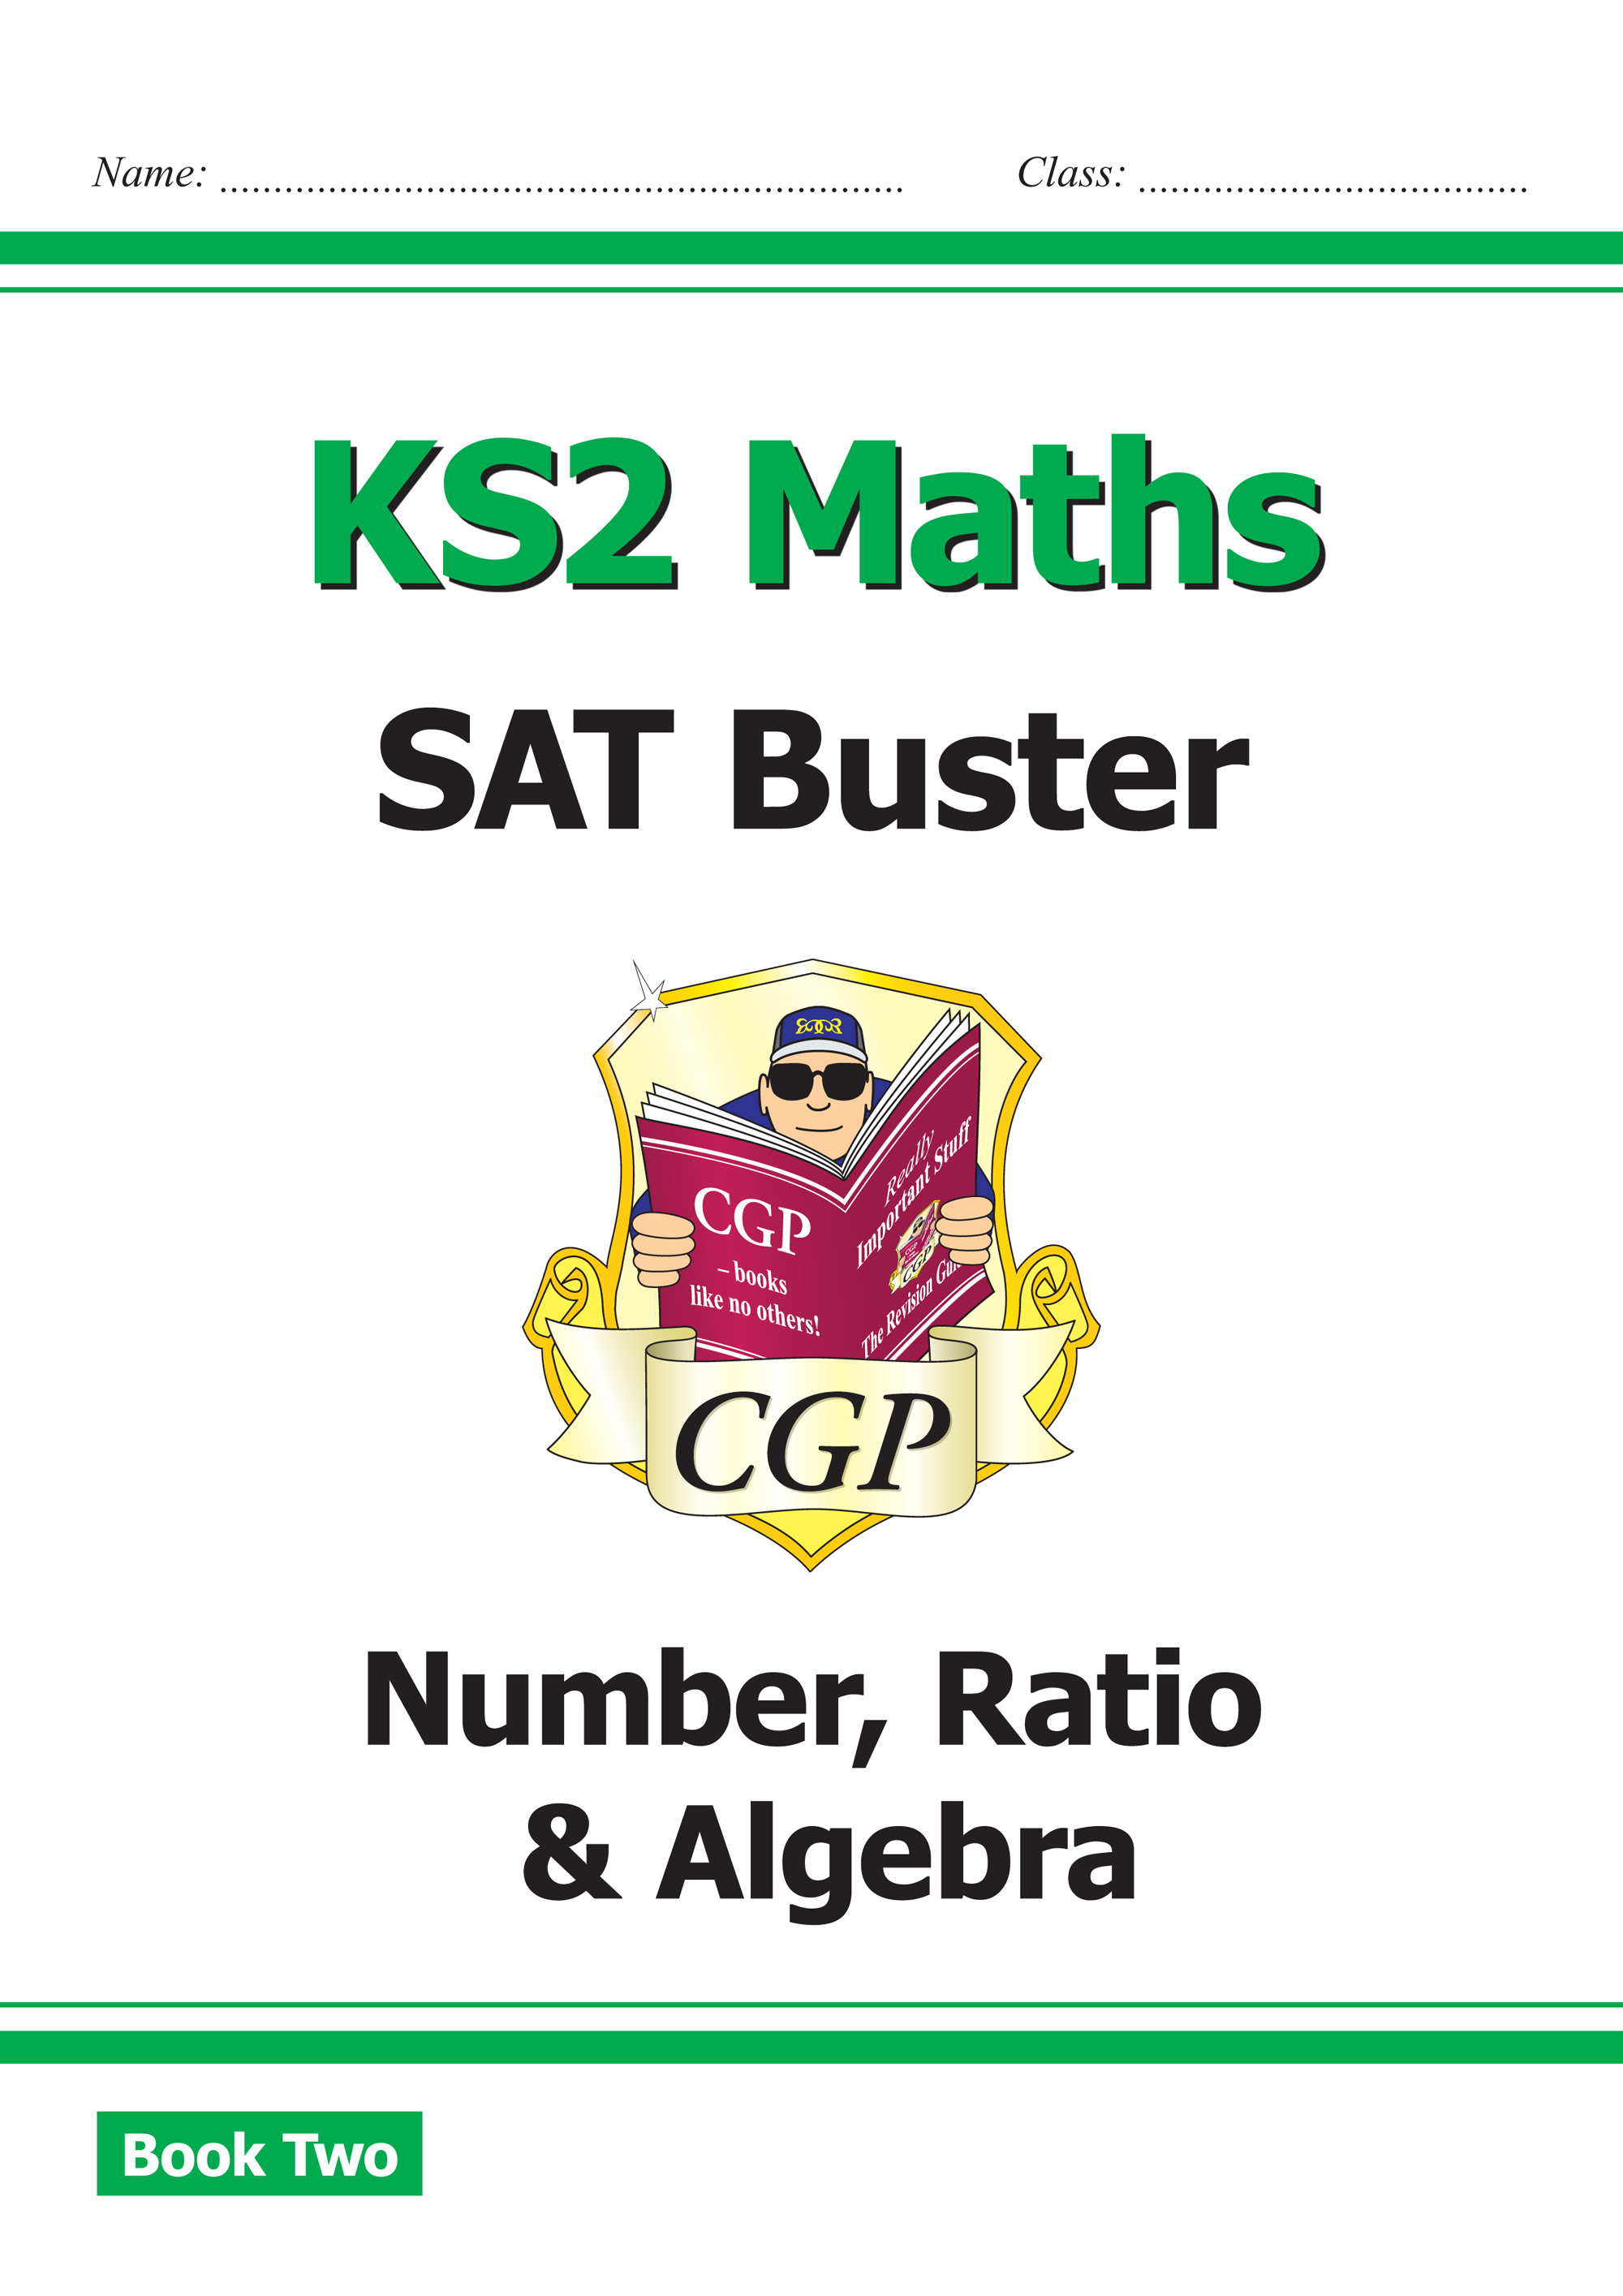 M6N221 - New KS2 Maths SAT Buster: Number, Ratio & Algebra Book 2 (for the 2020 tests)